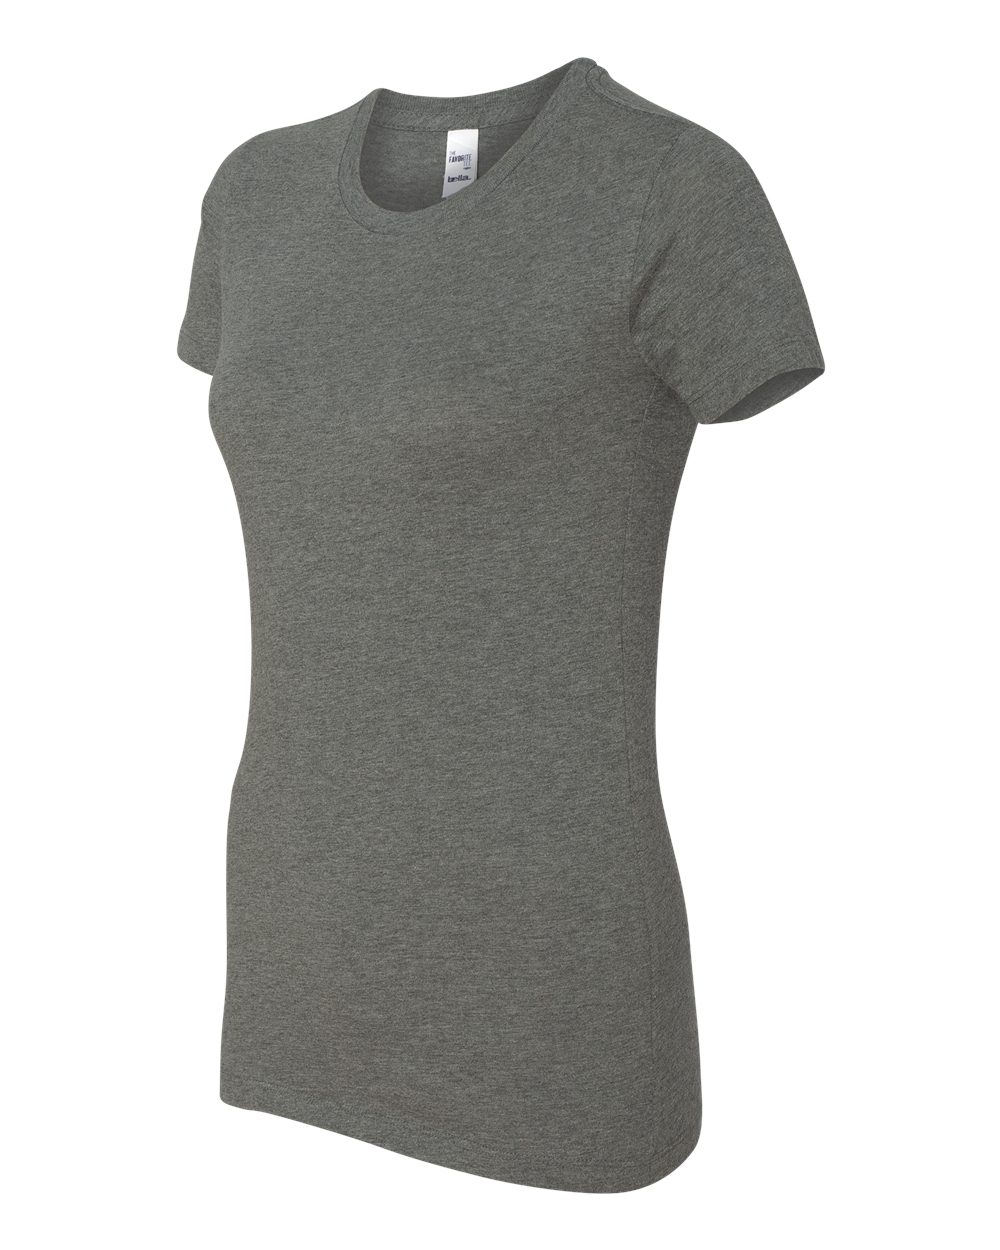 Bella-Canvas-Womens-The-Favorite-T-Shirt-6004-Size-S-2XL thumbnail 53